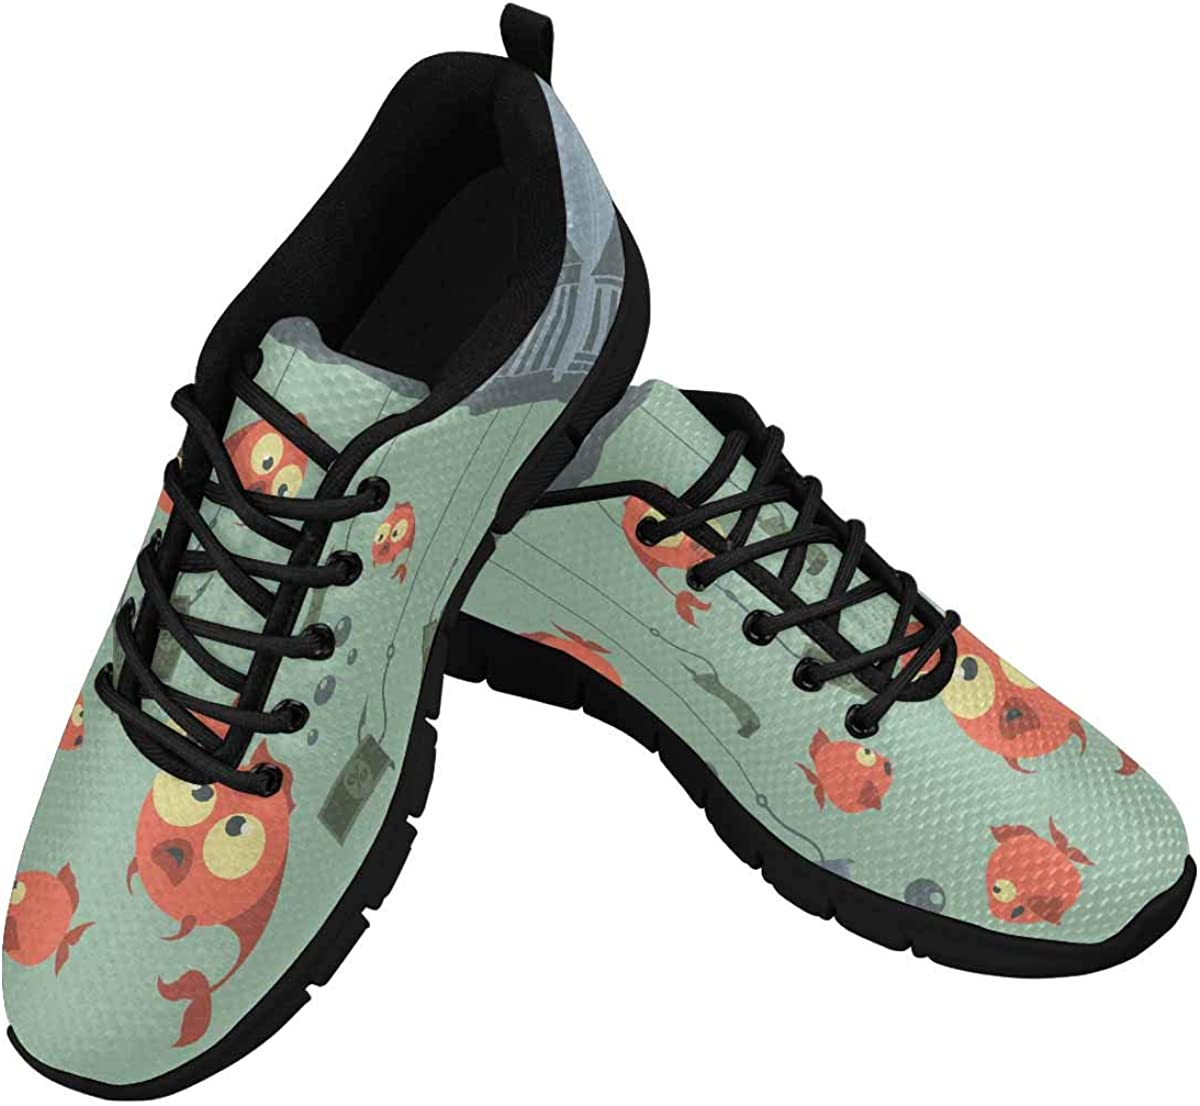 INTERESTPRINT Fishing Background Lightweight Mesh Breathable Sneakers for Women